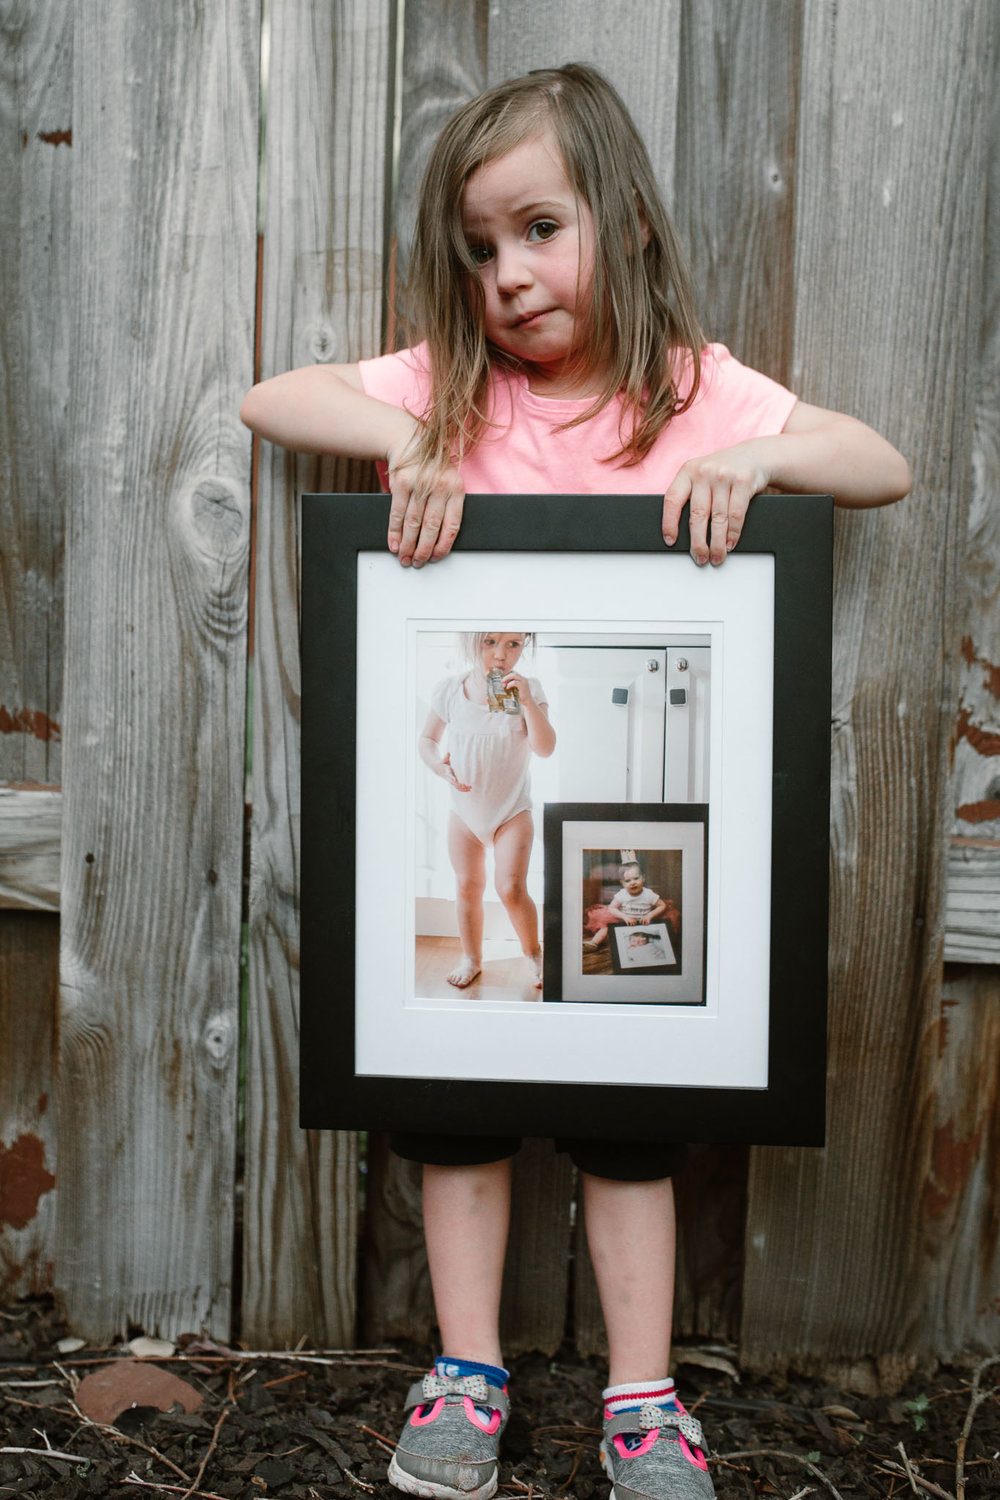 toddler holding a frame with pictures of herself when younger lifestyle childhood family photography